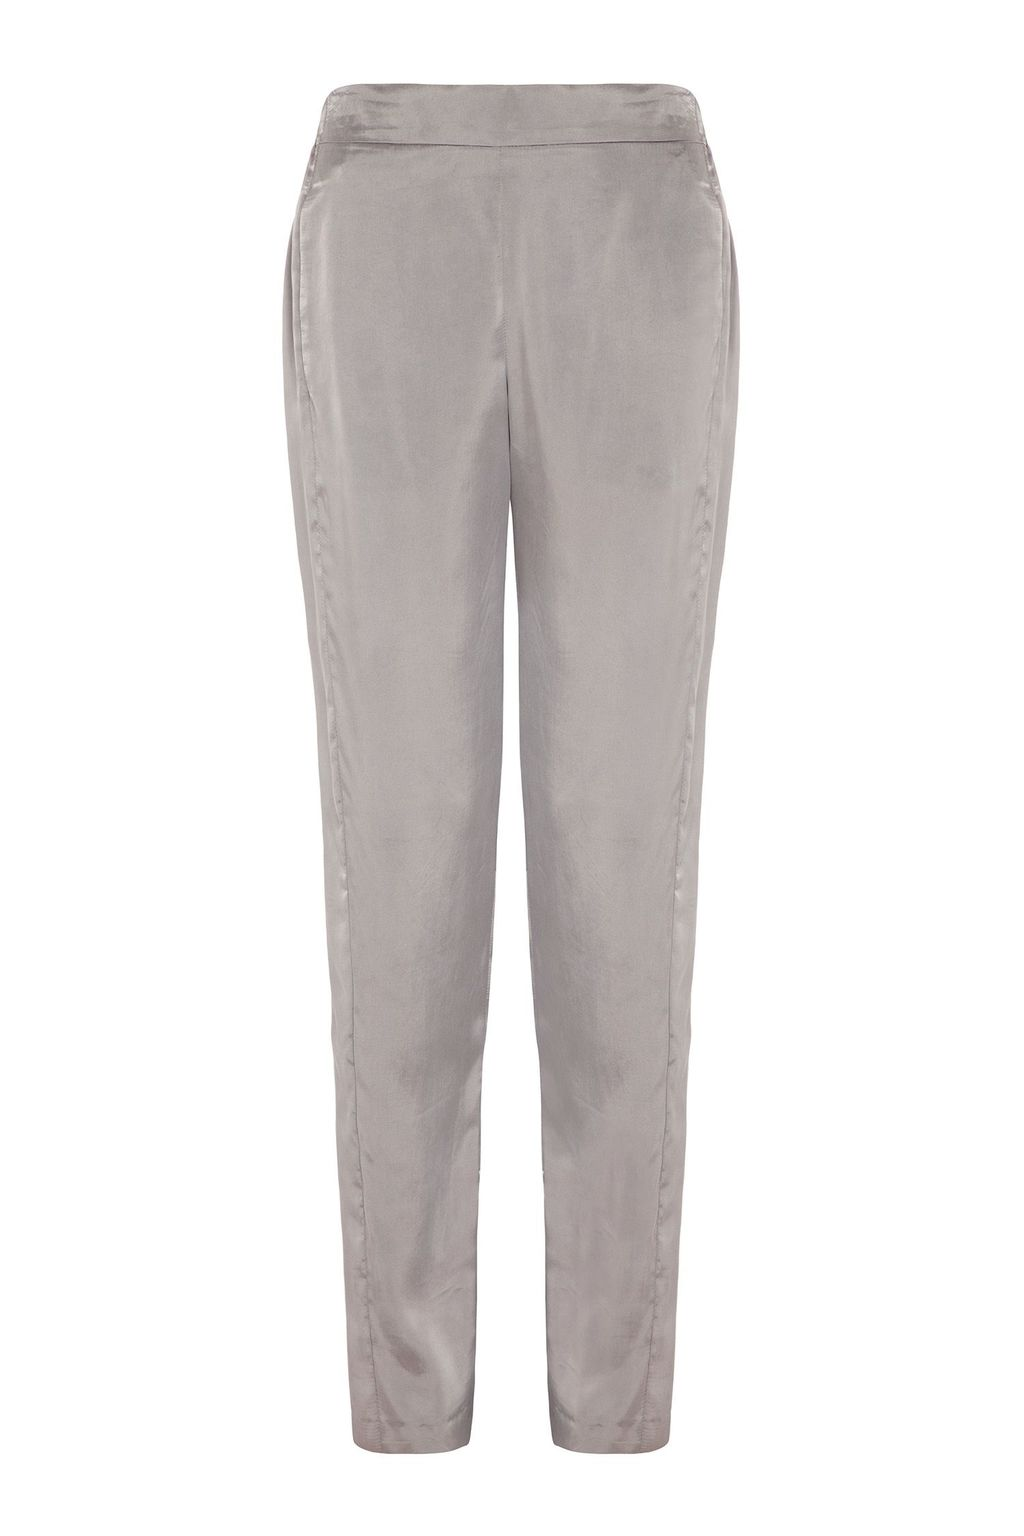 Scala Trousers, Grey - length: standard; pattern: plain; waist: high rise; predominant colour: light grey; occasions: casual, evening, creative work; texture group: structured shiny - satin/tafetta/silk etc.; fit: slim leg; pattern type: fabric; style: standard; season: s/s 2015; wardrobe: basic